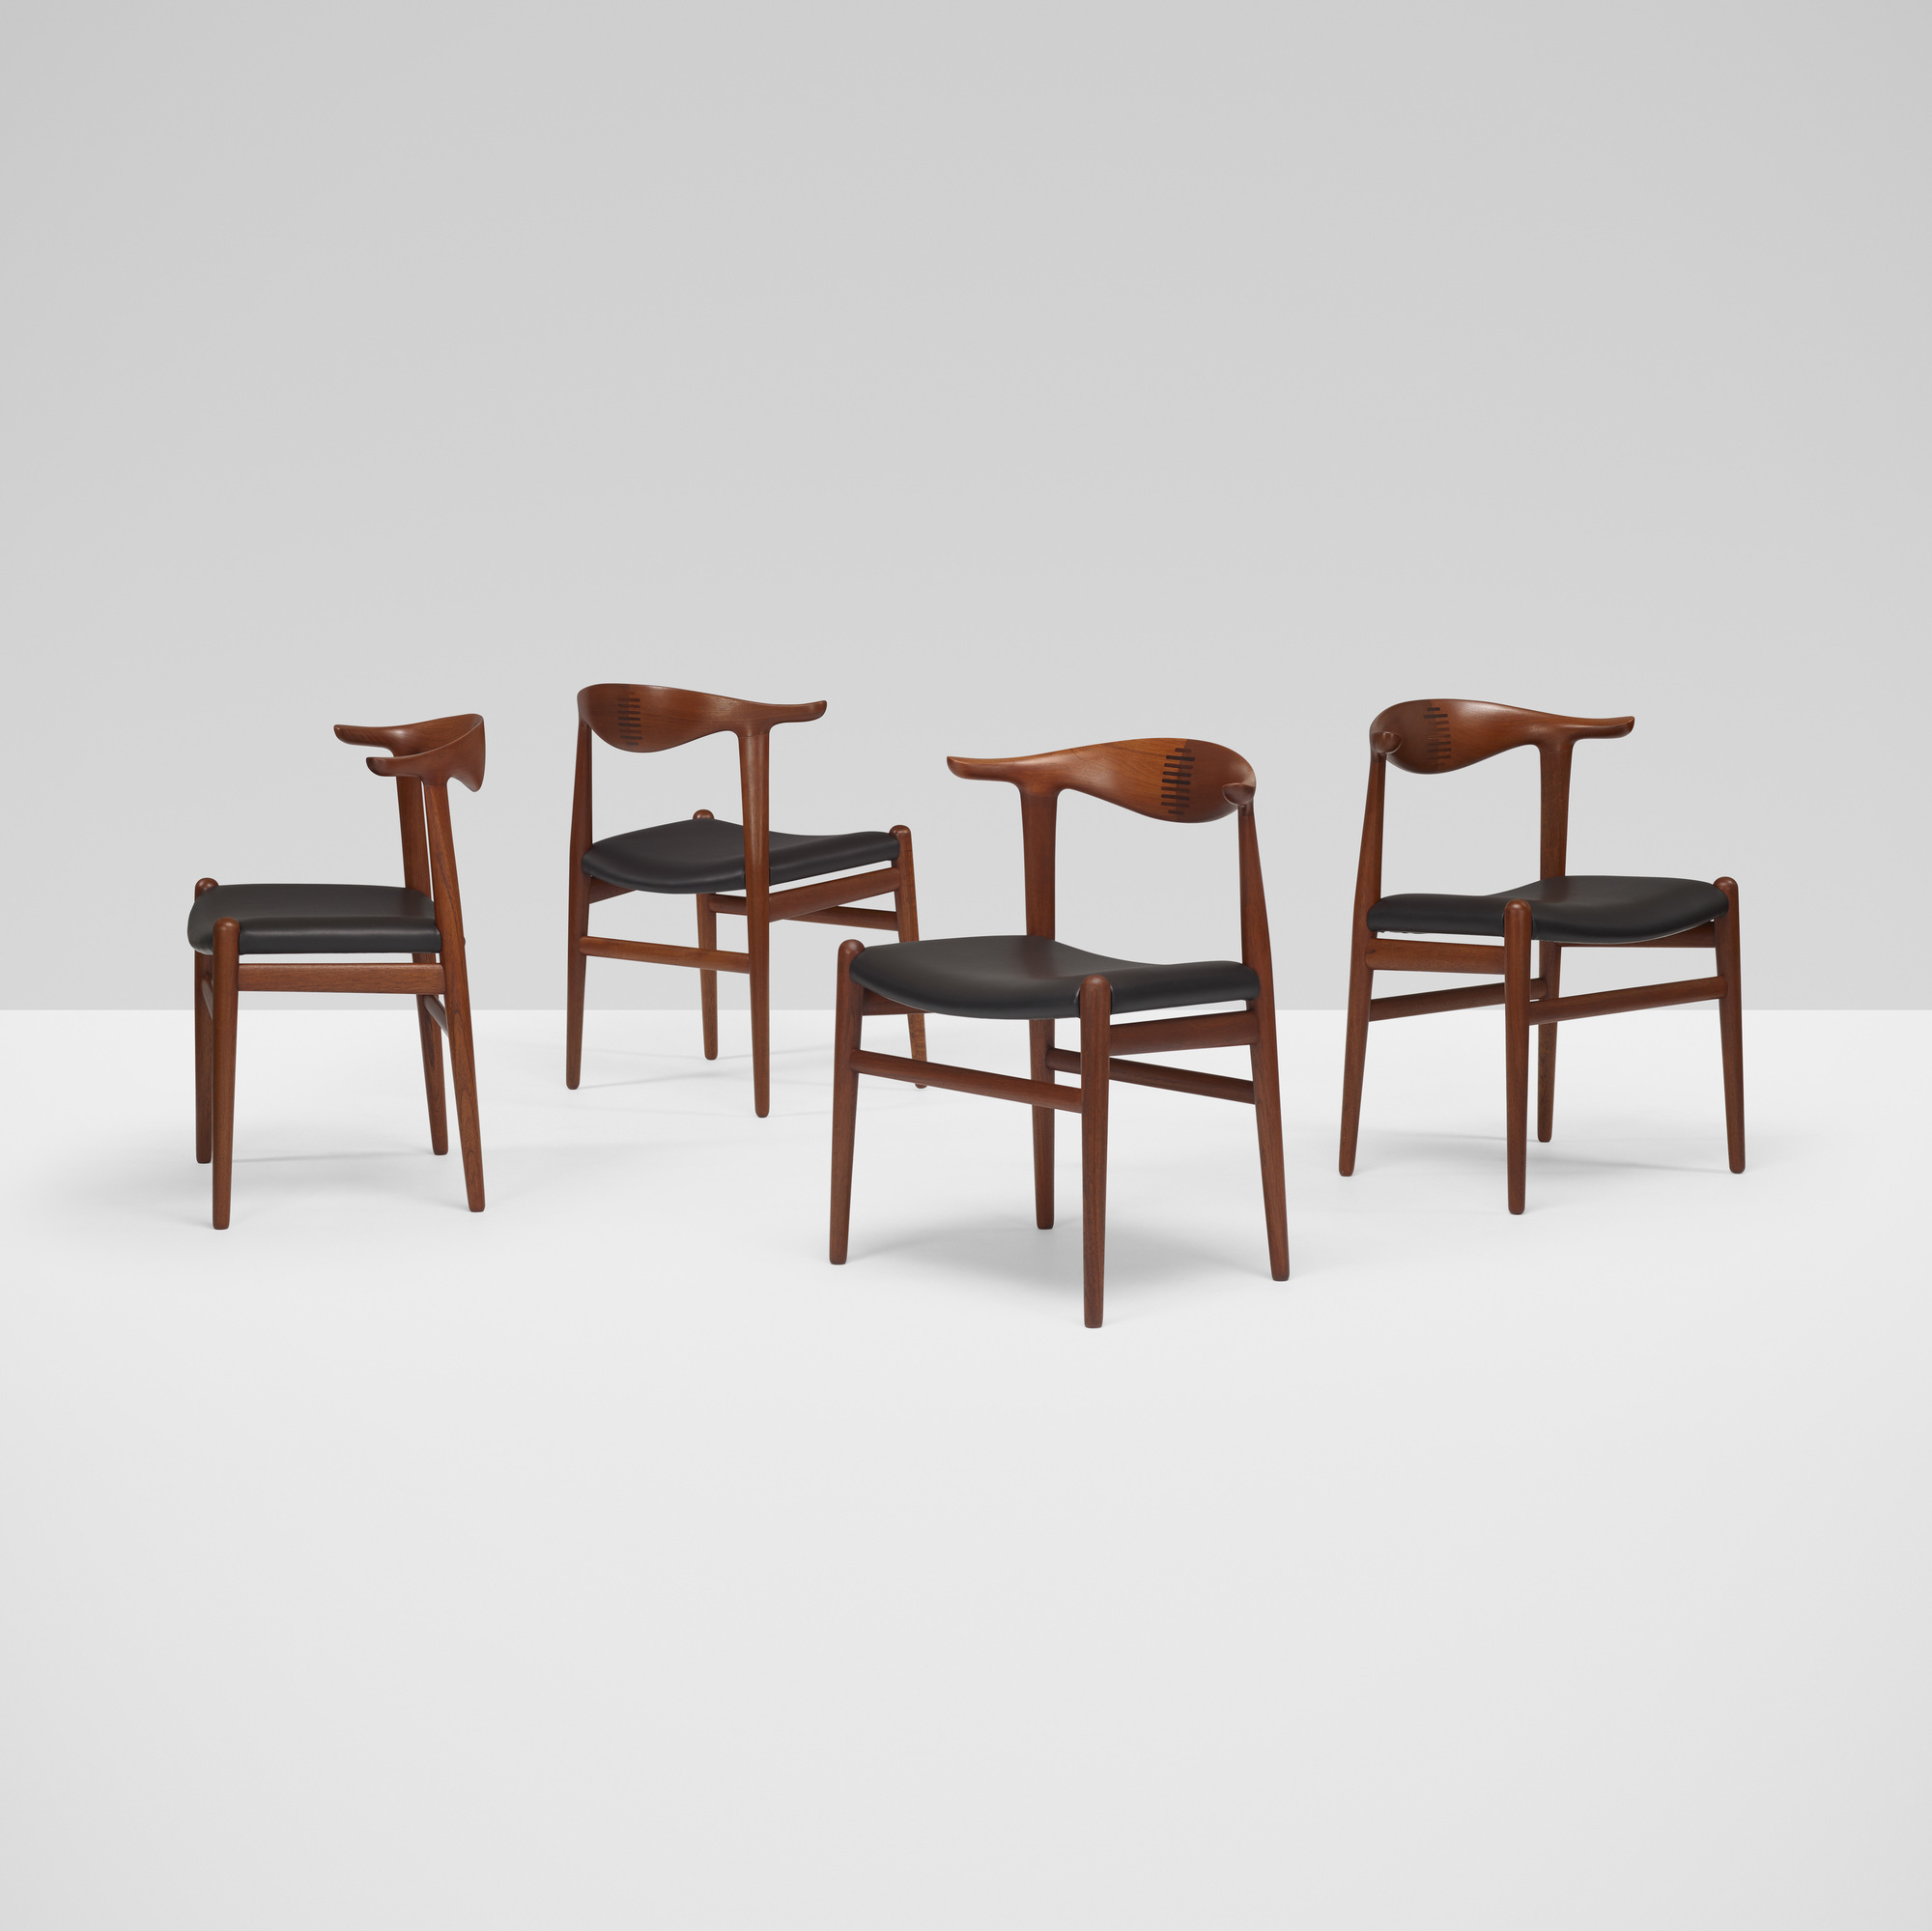 367: Hans J. Wegner / Cow Horn chairs, set of eight (2 of 7)